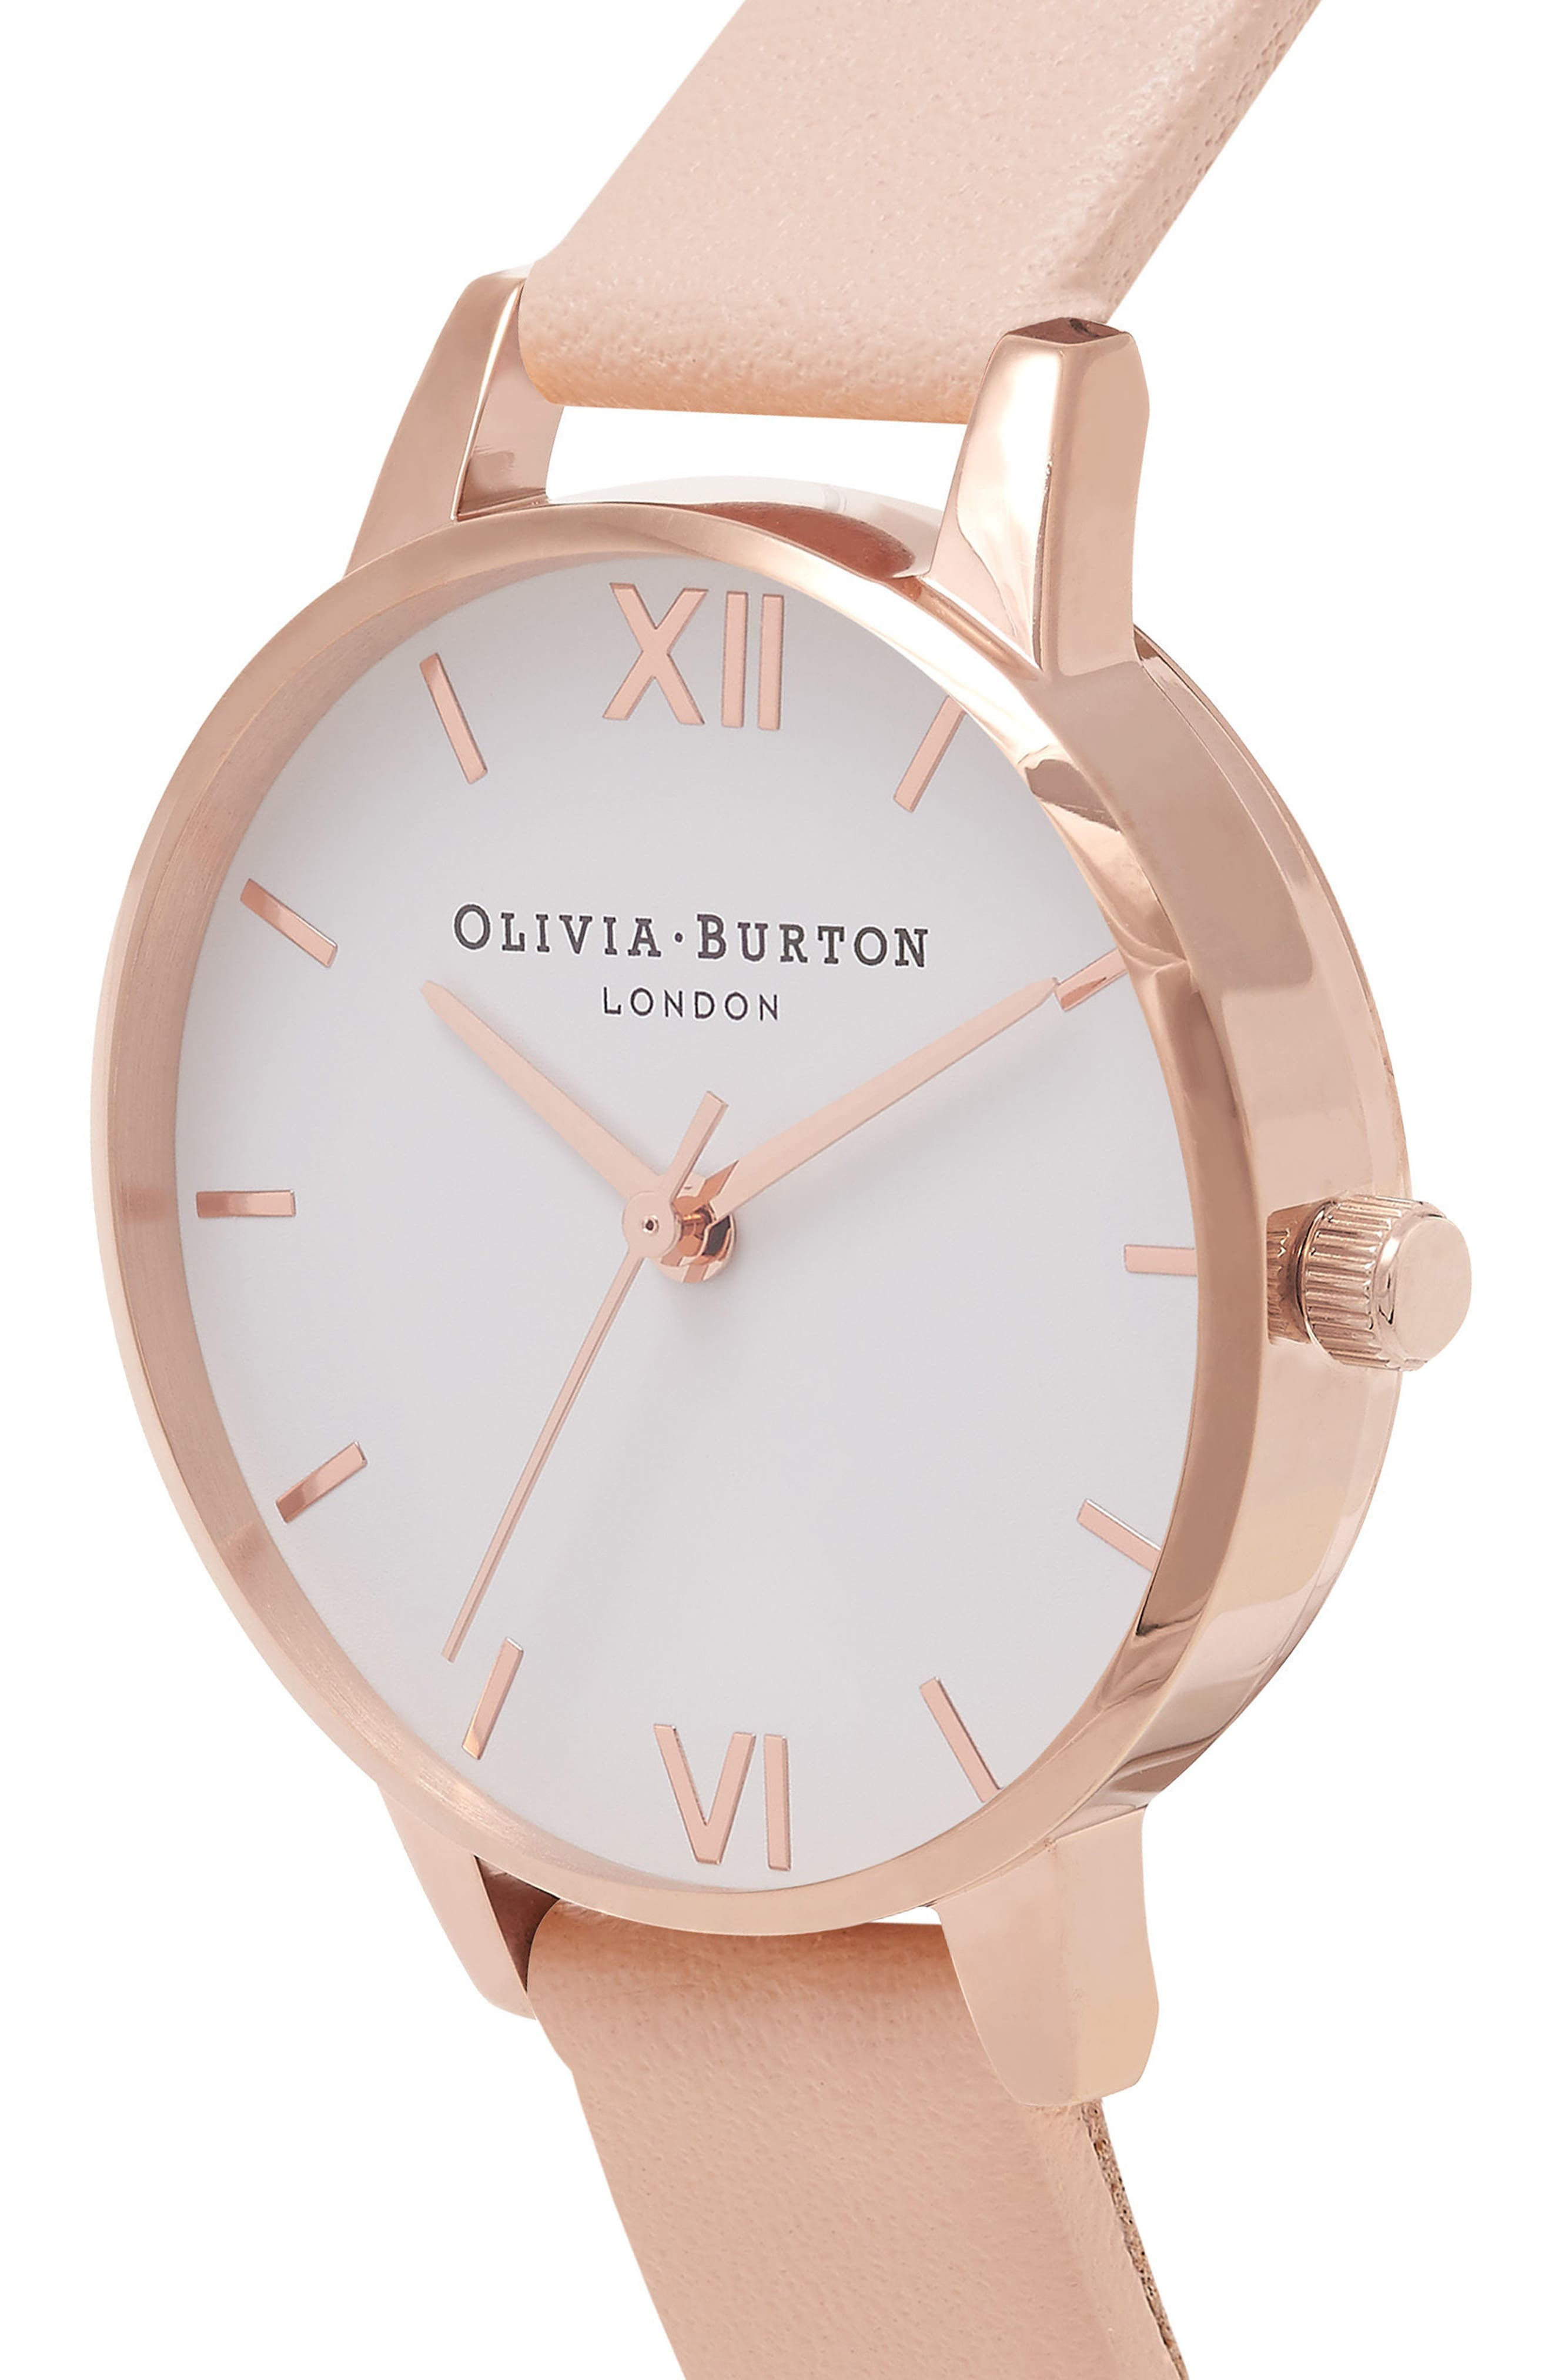 Midi Dial Leather Strap Watch, 30mm,                             Alternate thumbnail 3, color,                             NUDE PEACH/ WHITE/ ROSE GOLD